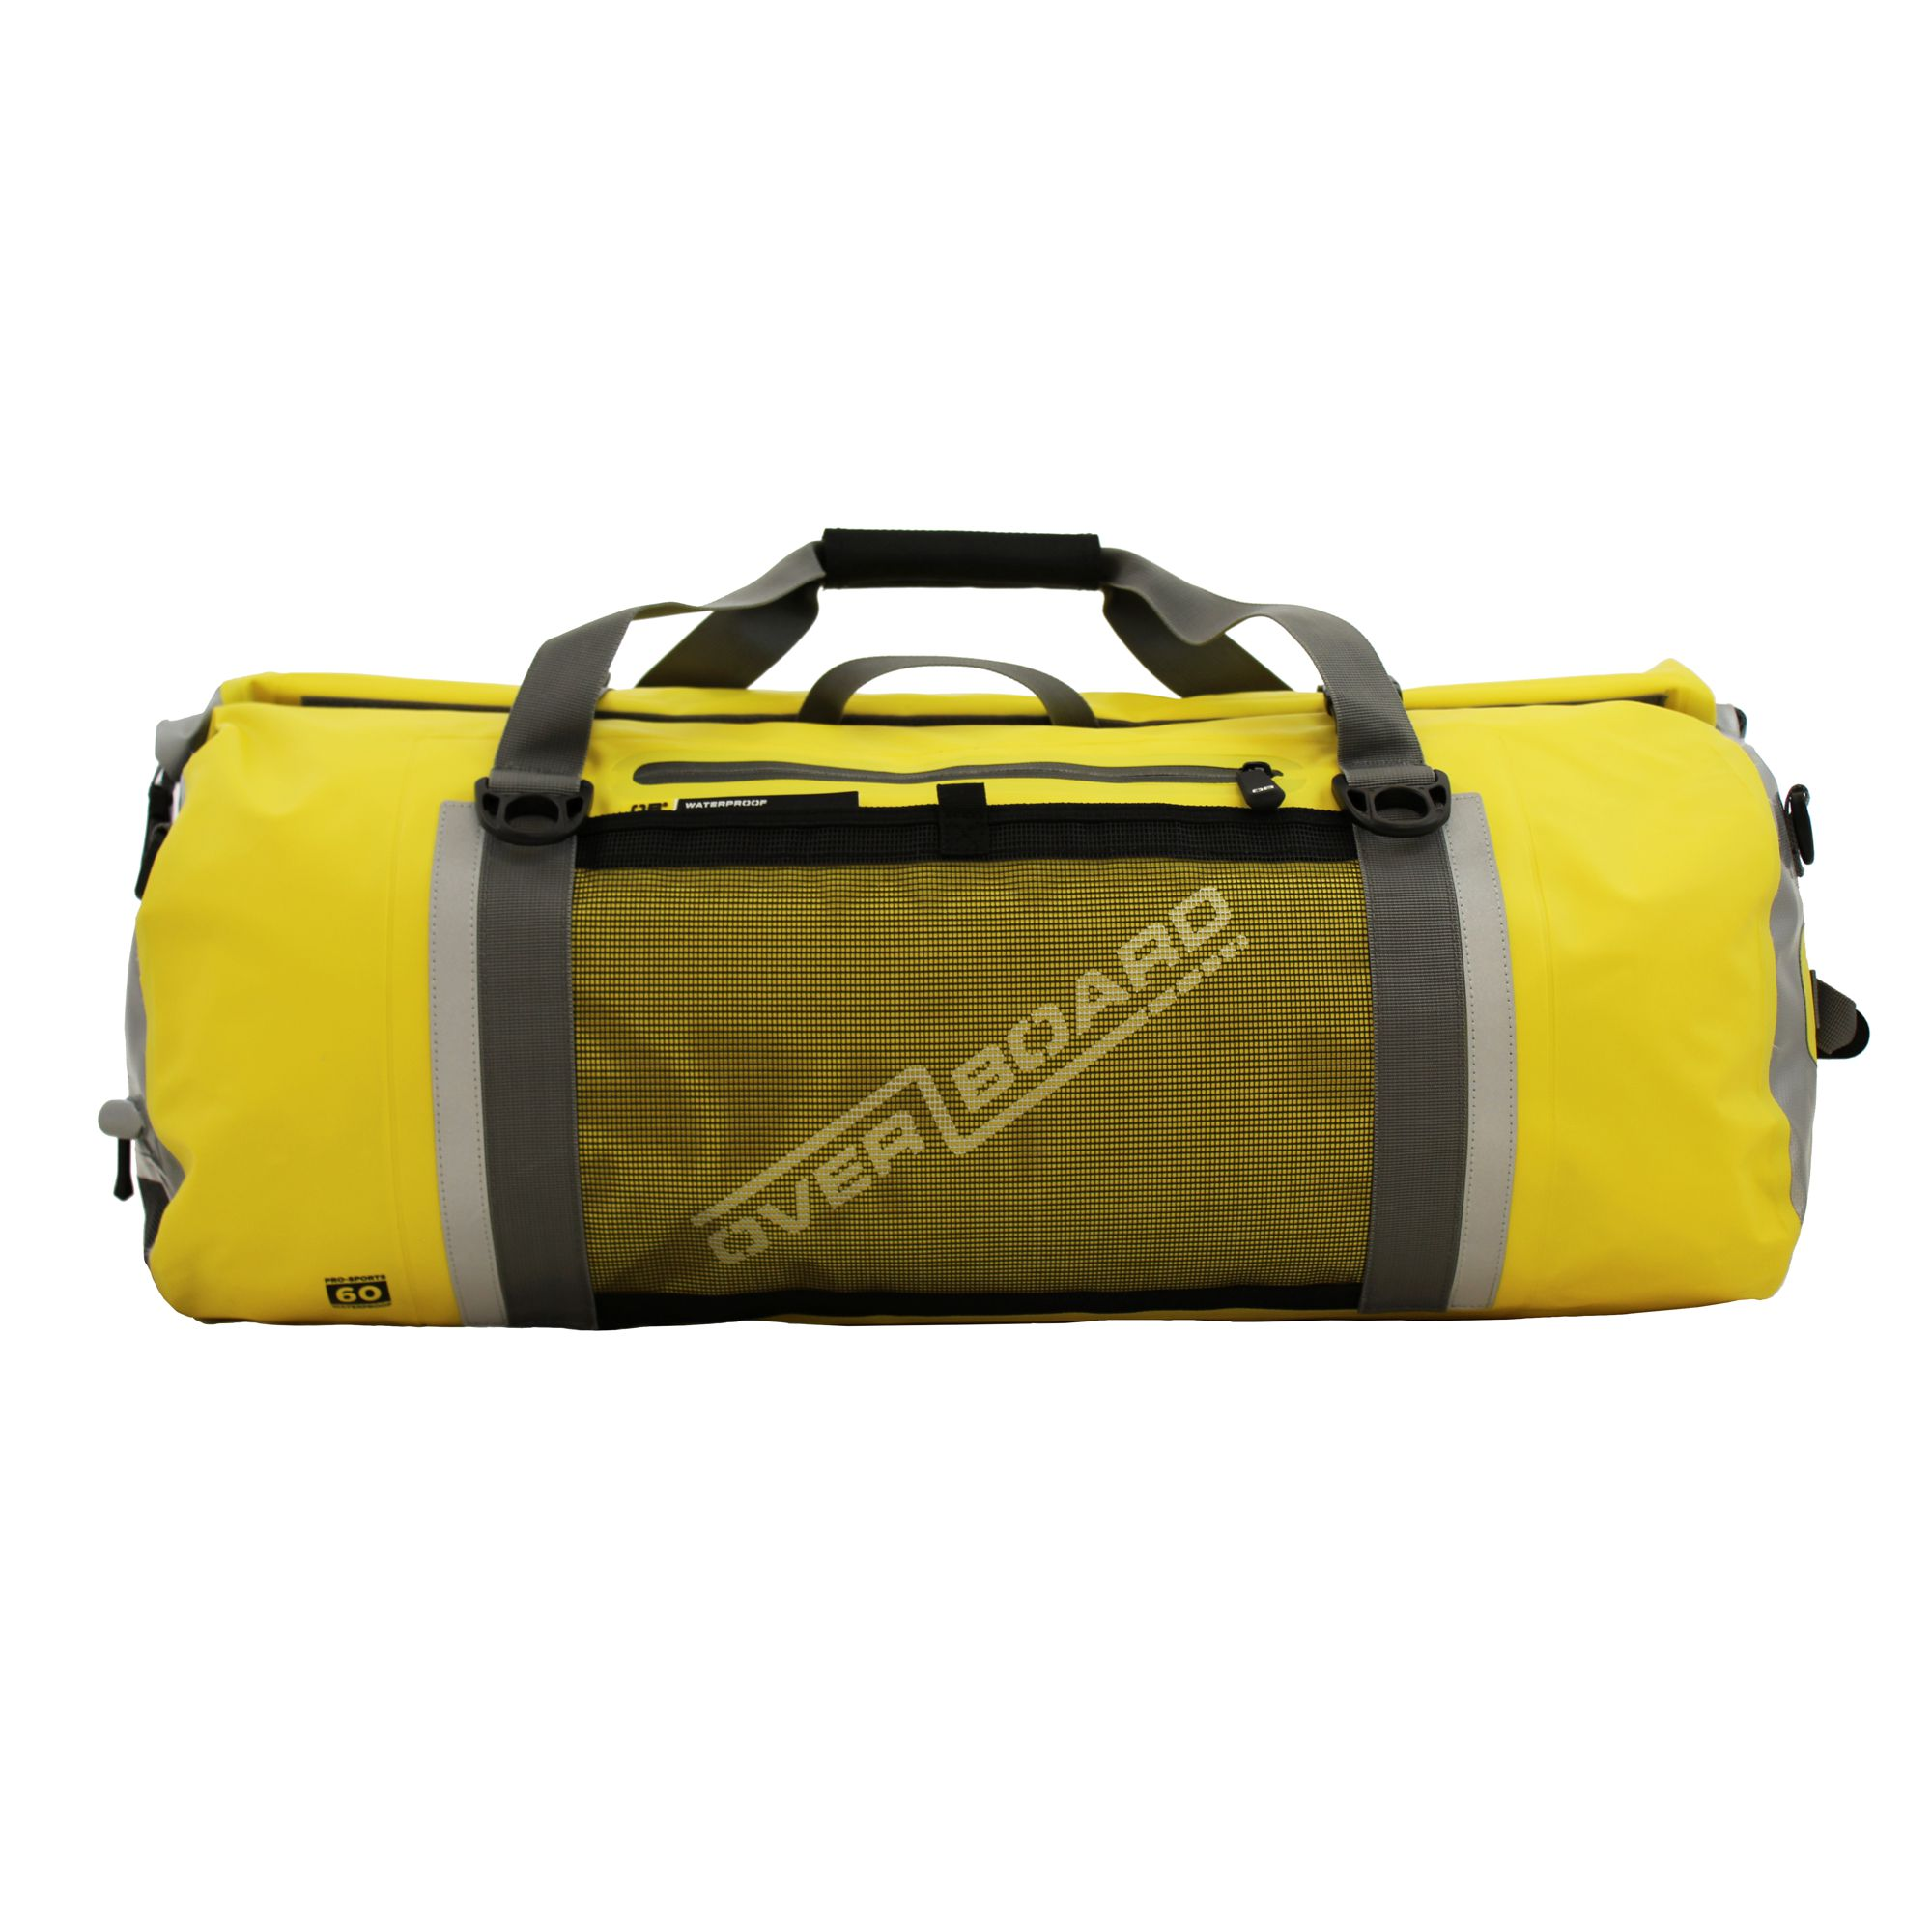 OverBoard wasserdichte Duffel Bag Sports 60 L Gelb OB1154Y  Pro Sports